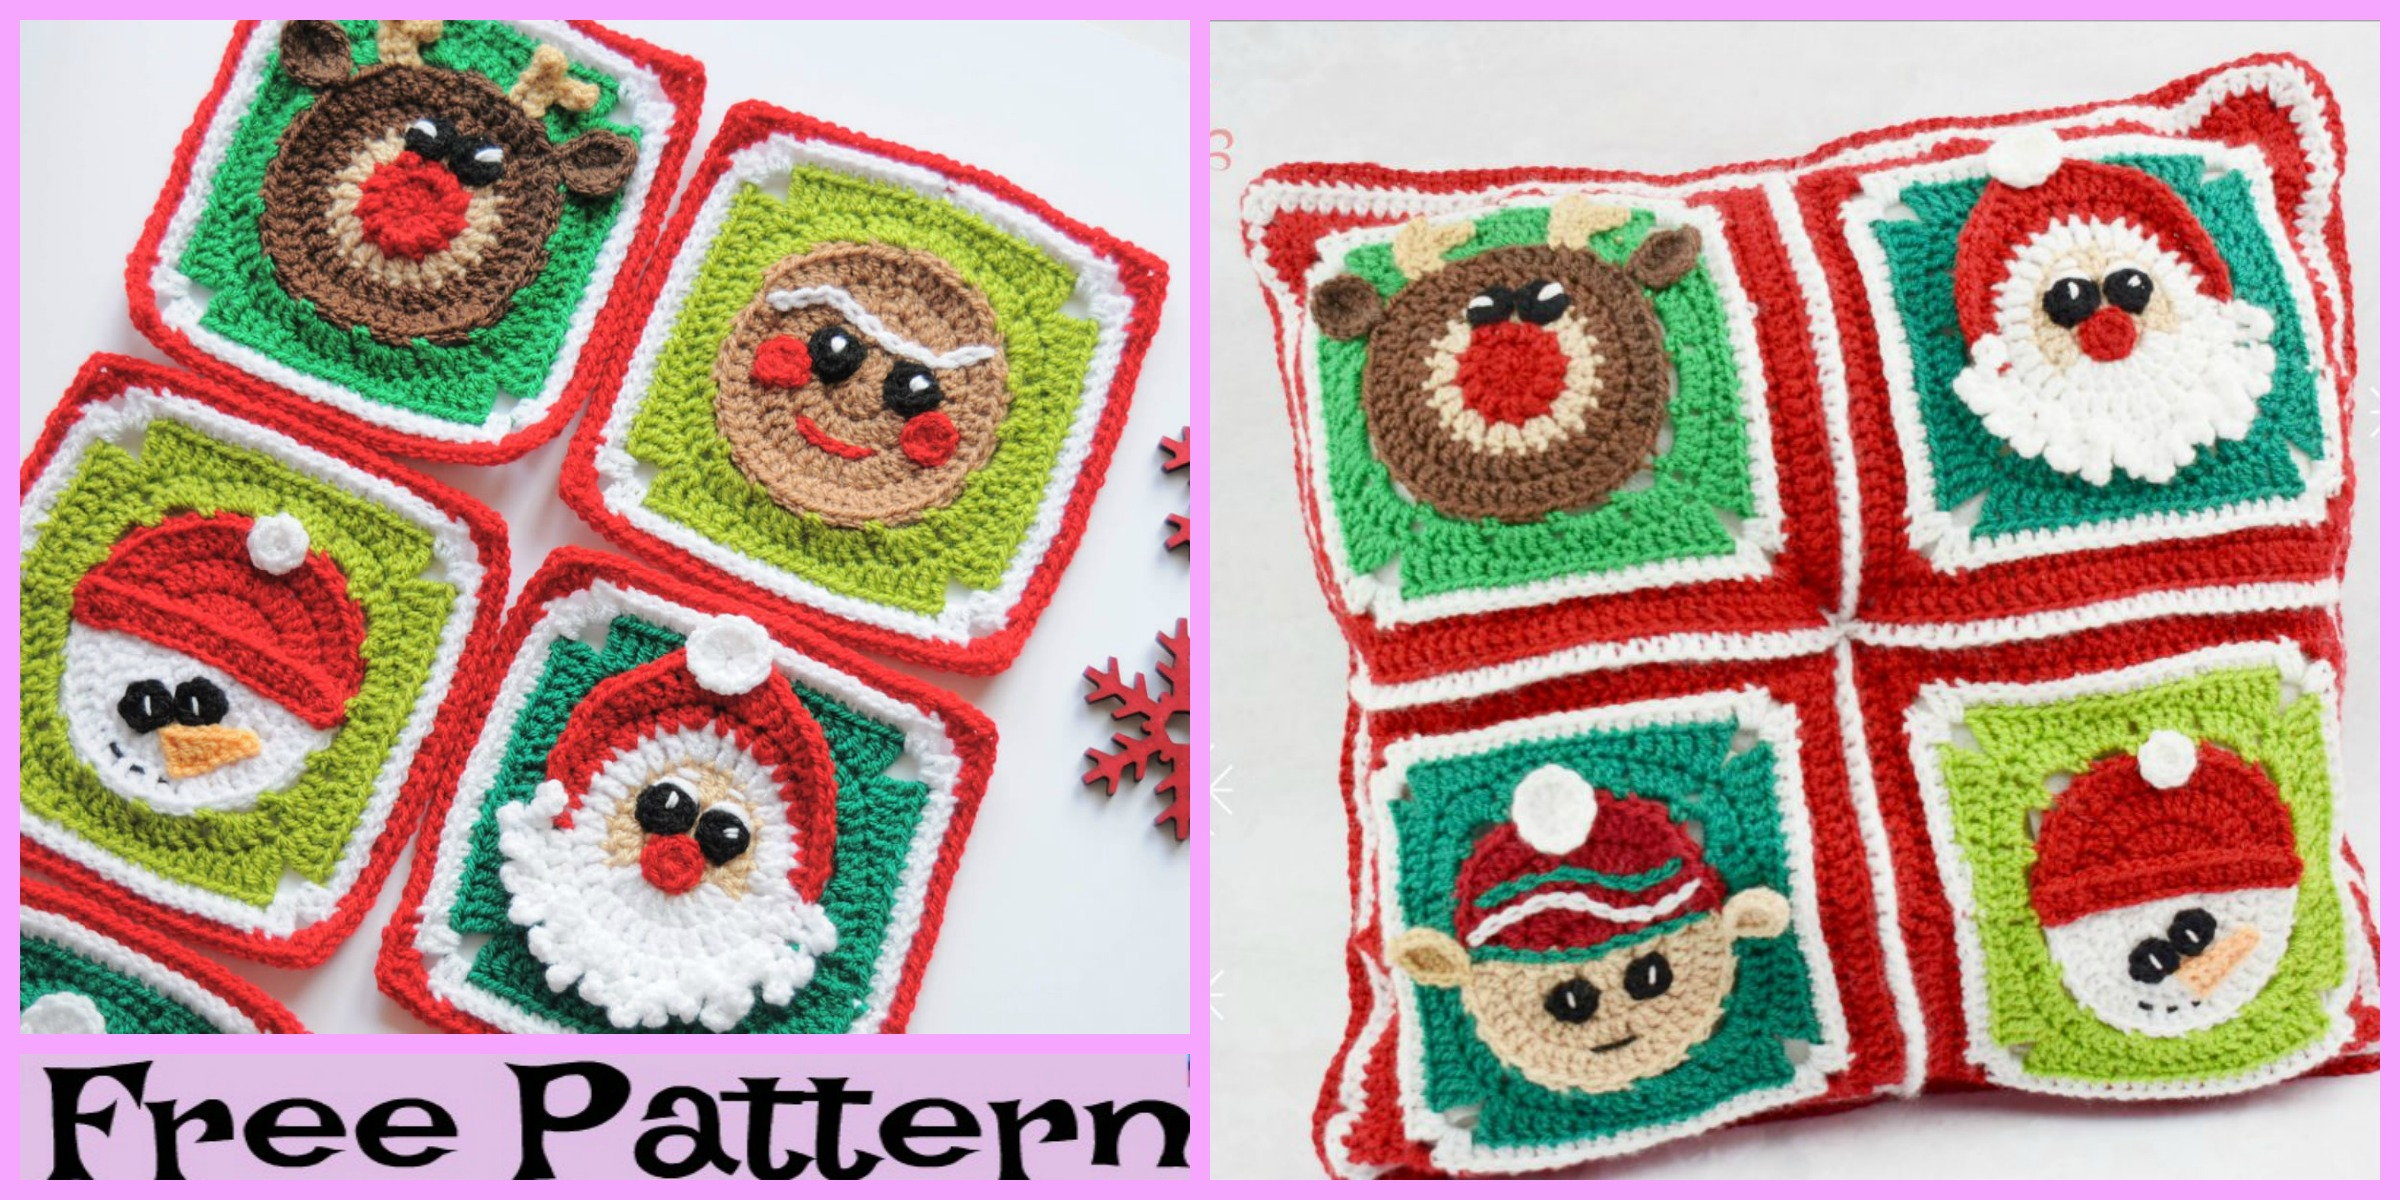 Crochet Christmas Granny Squares – Free Pattern